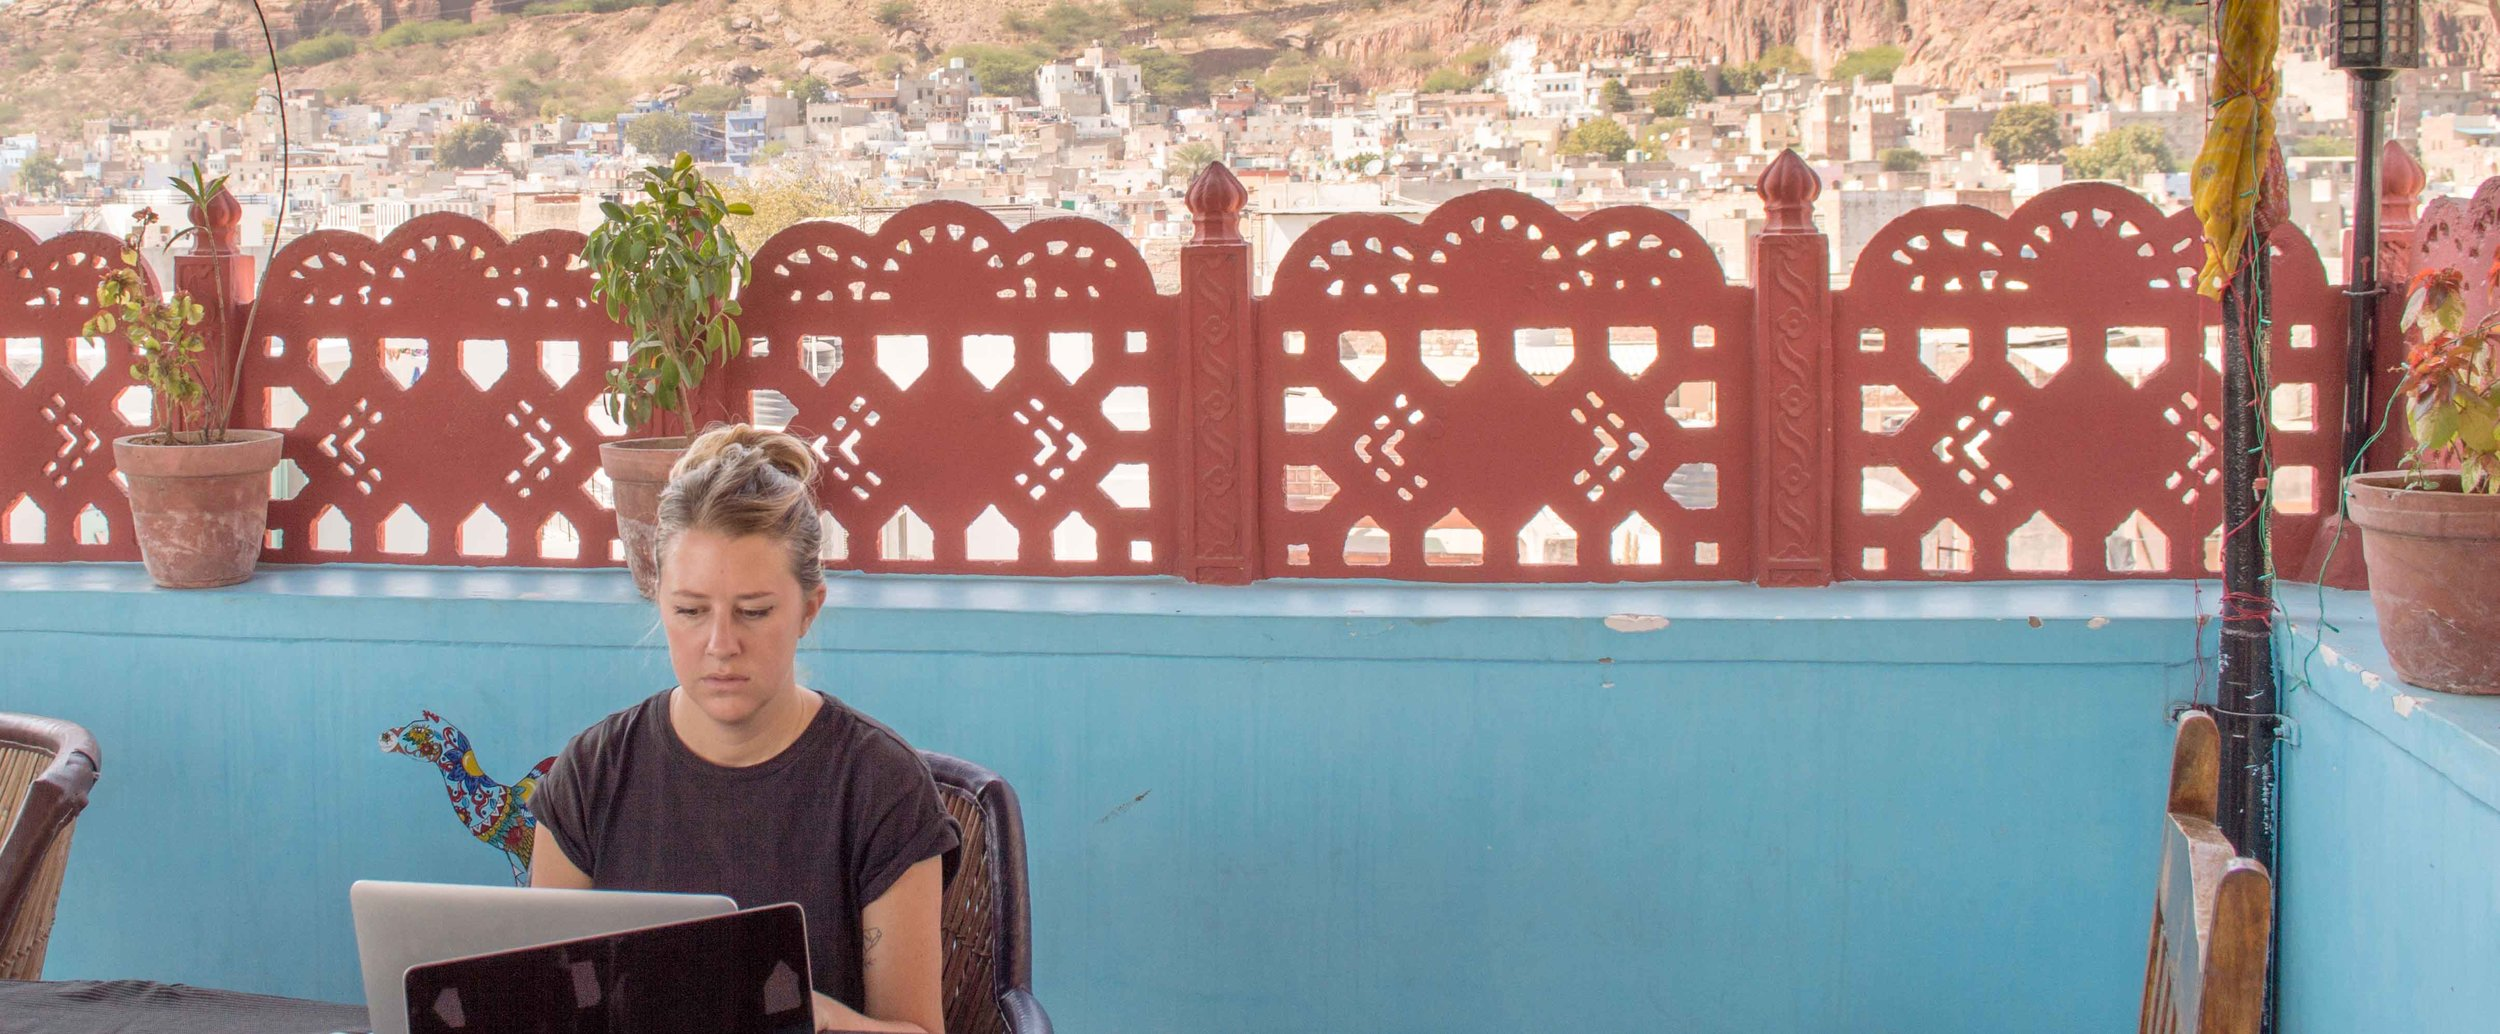 Although Alice doesn't look the happiest here, working at the foothill of Indian castles has its benefits!